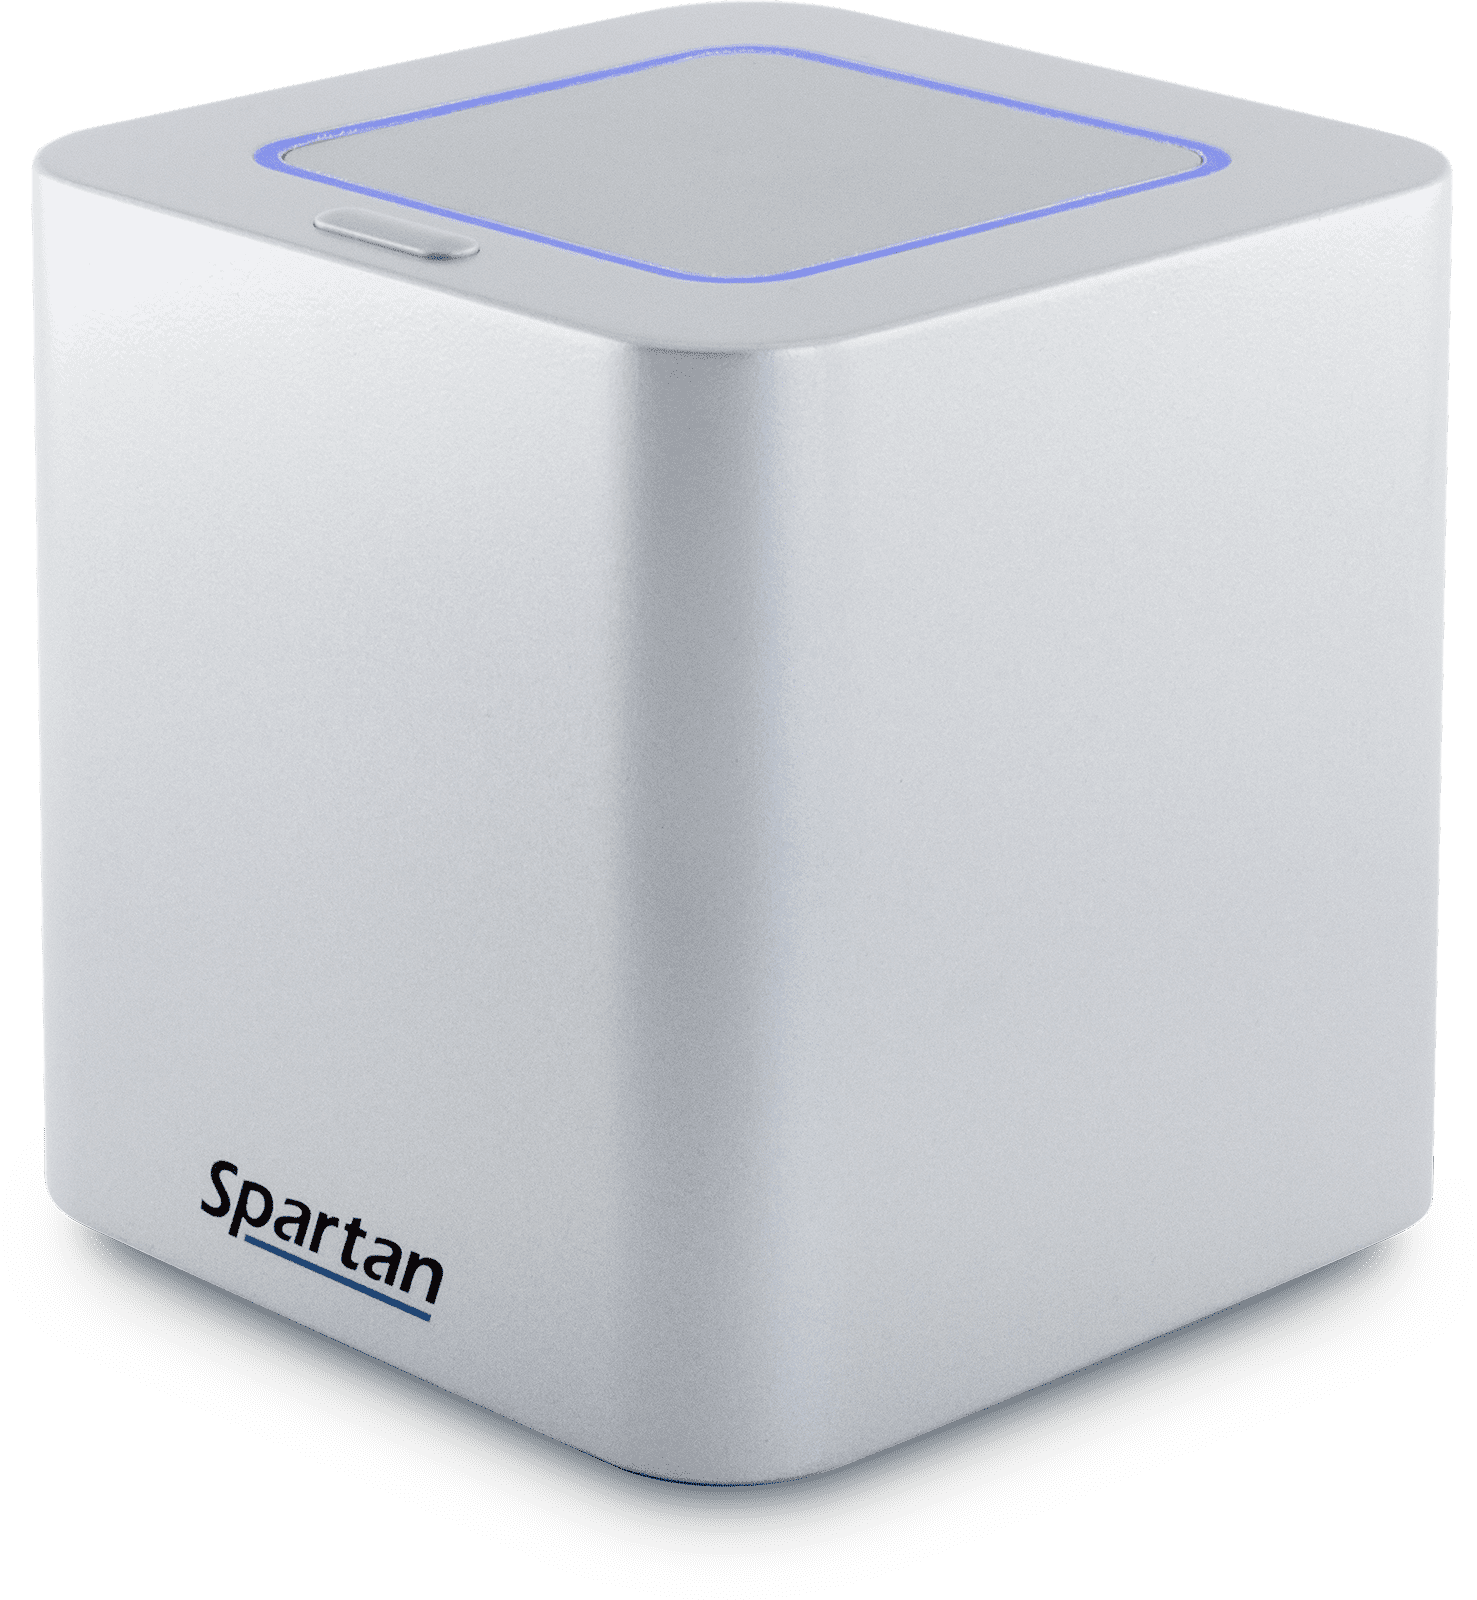 The Spartan Cube is used for a wide variety of test applications